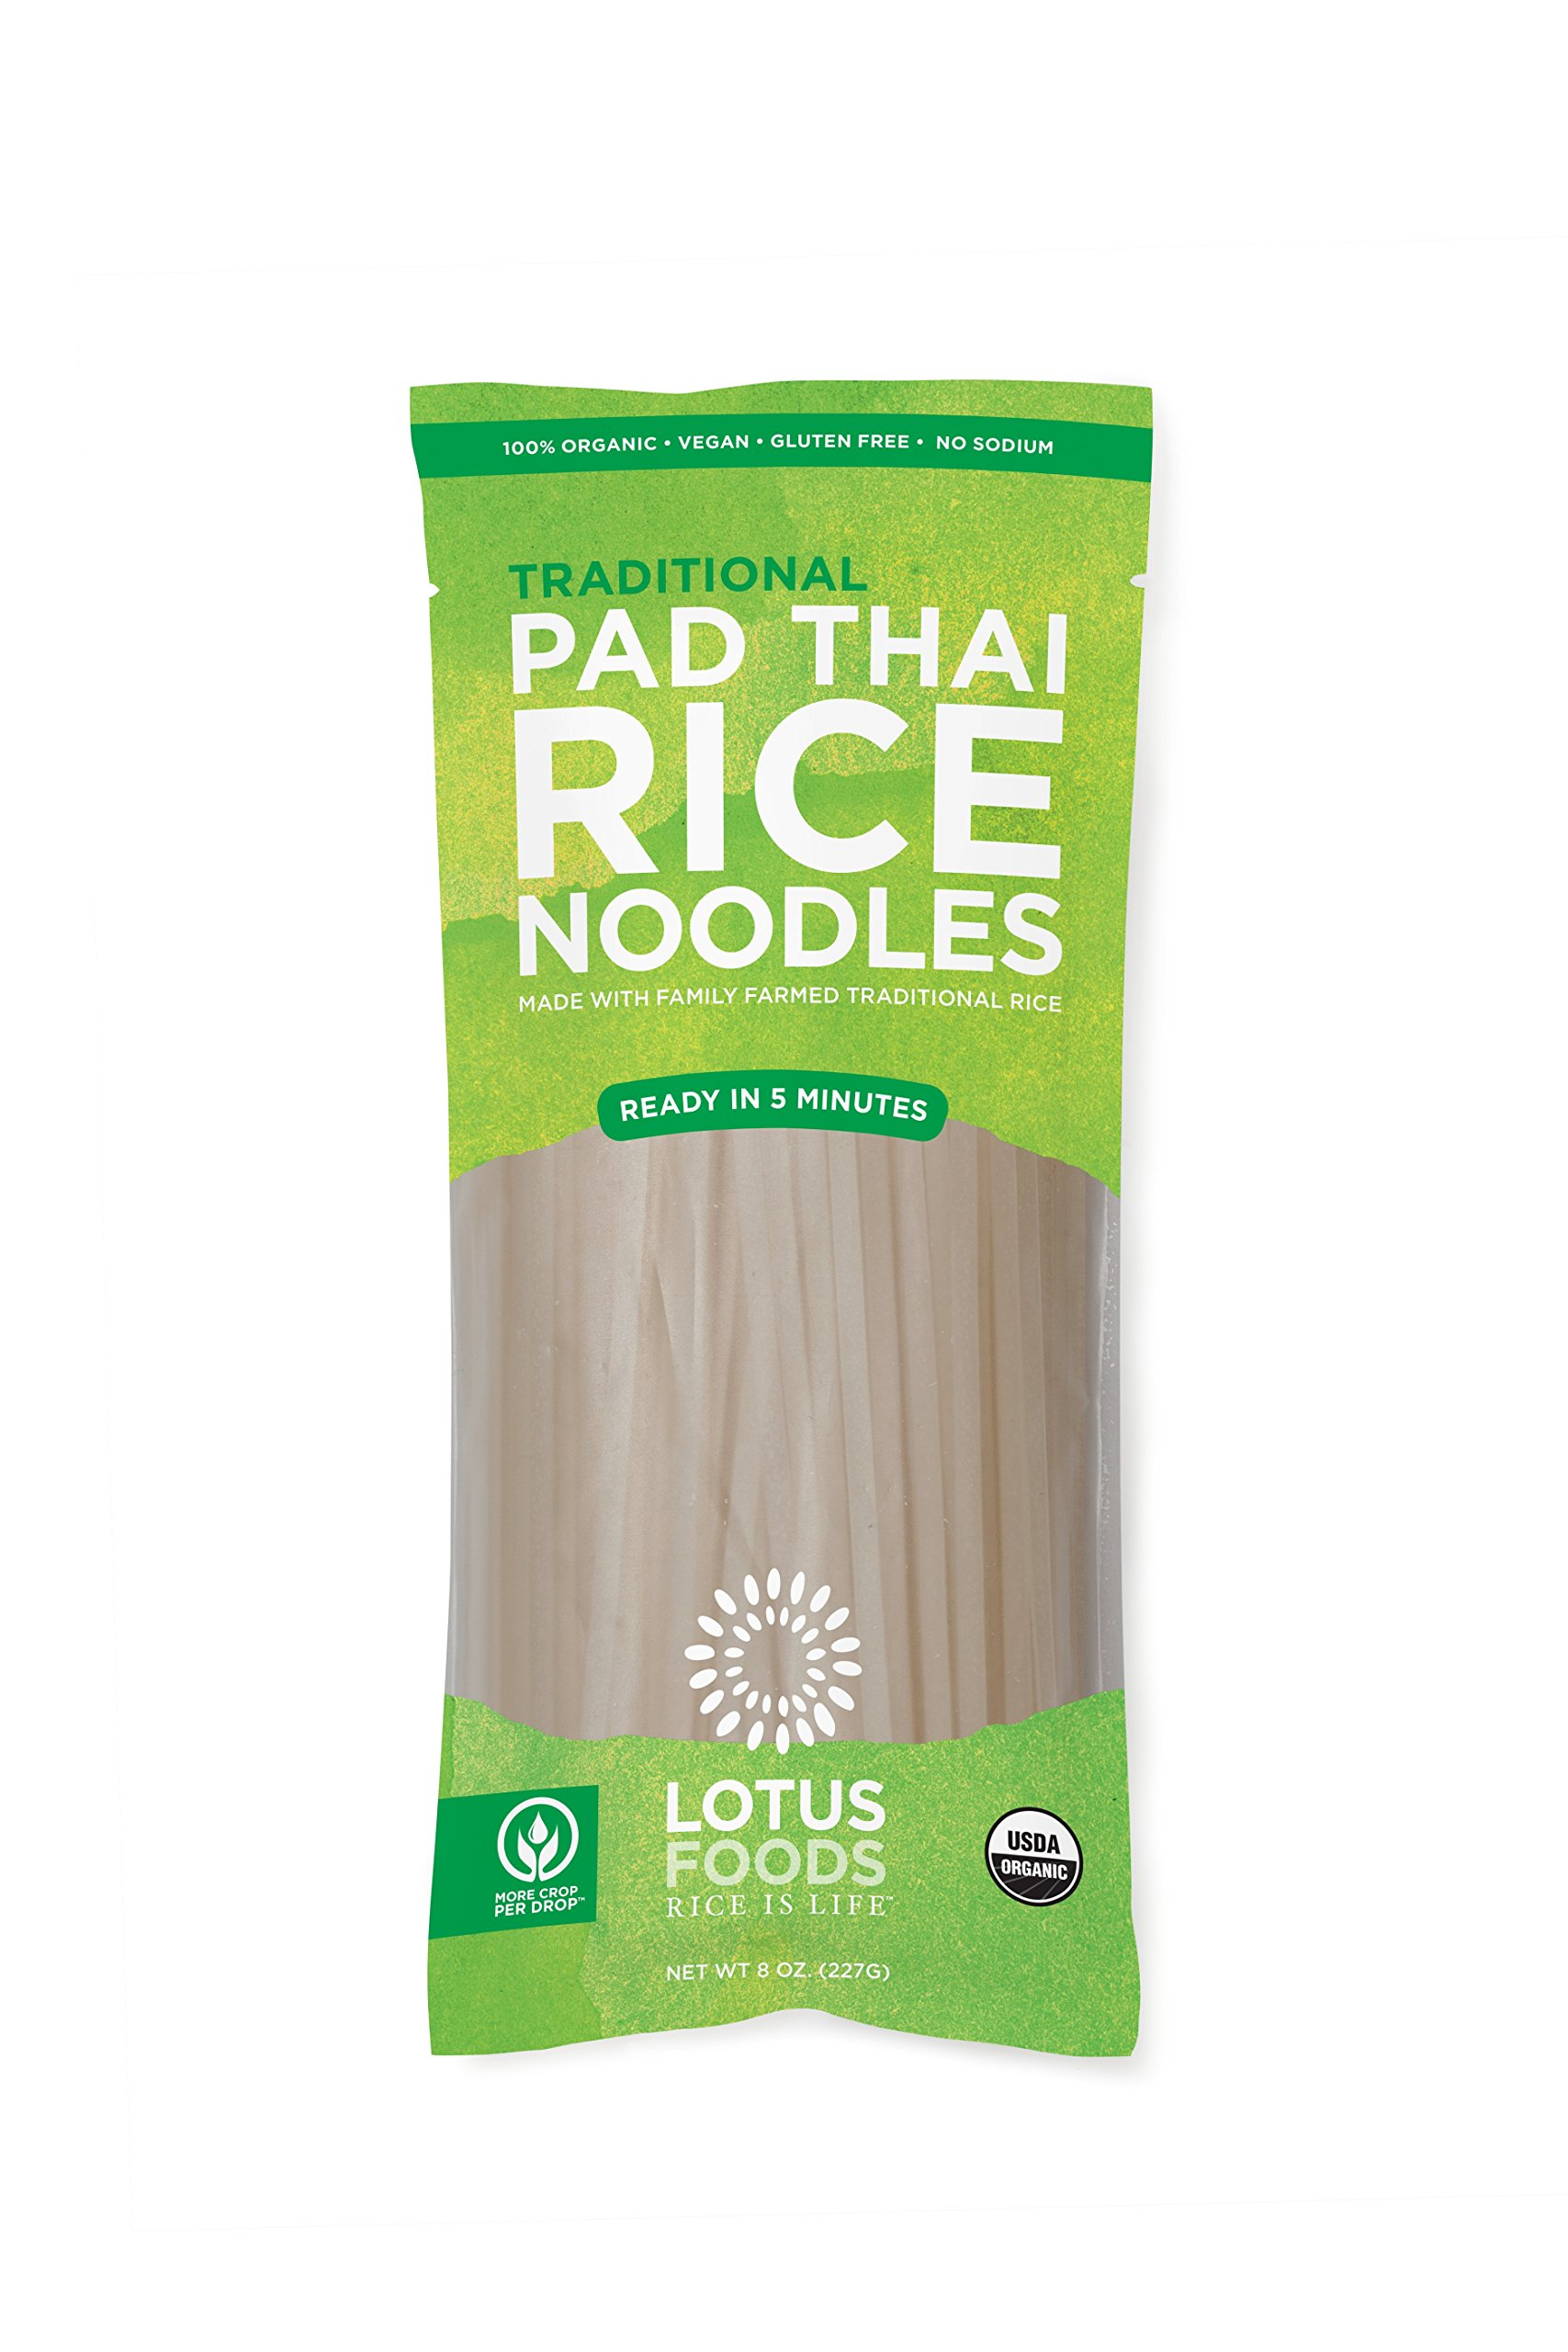 Lotus Foods Organic Traditional Pad Thai Noodles, 8 Count by Lotus Foods